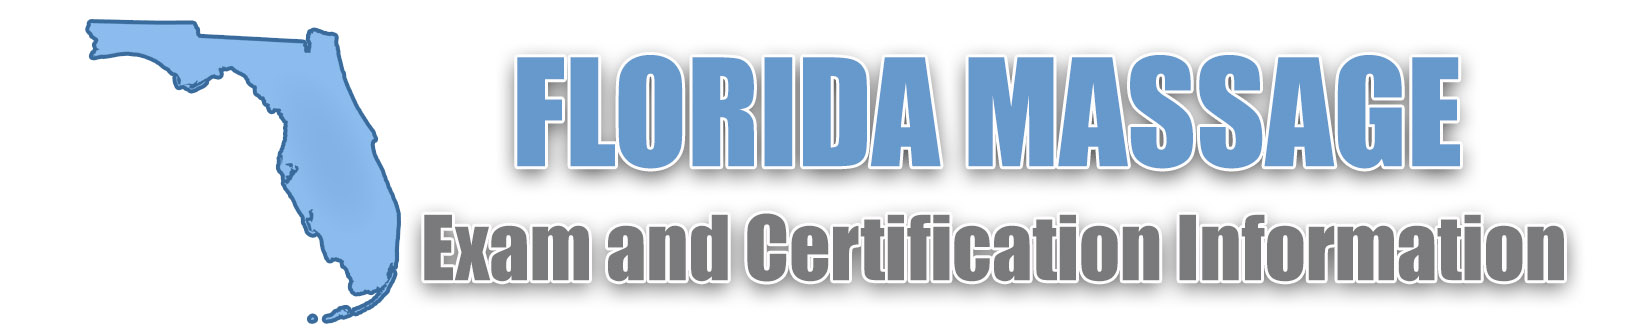 Florida Massage Therapy Licensure Exam Certification And